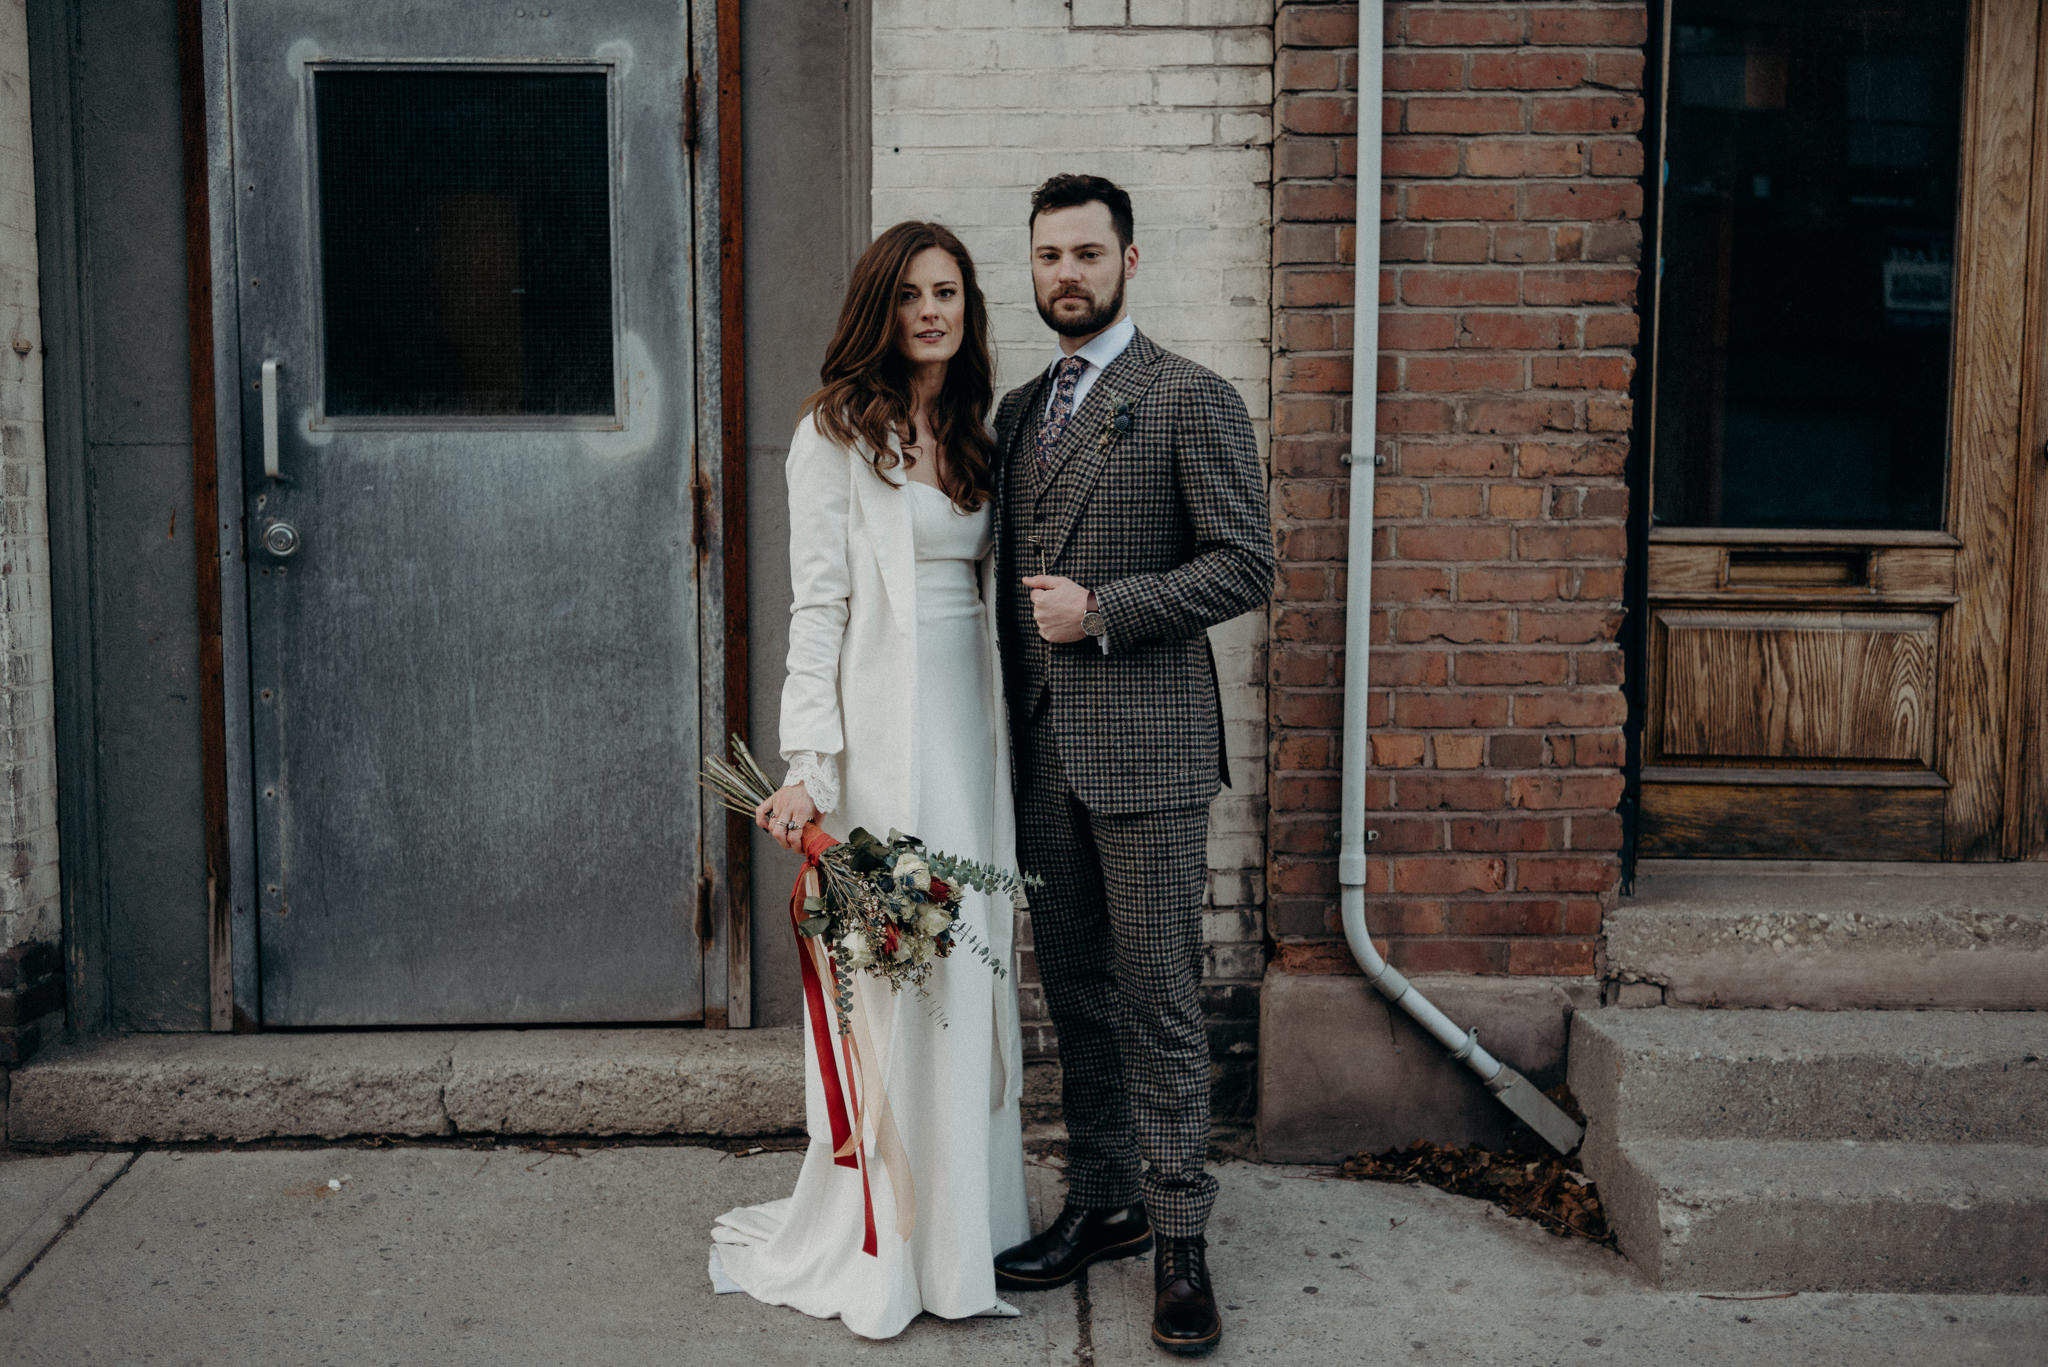 wedding portrait while standing on sidewalk in front of old building